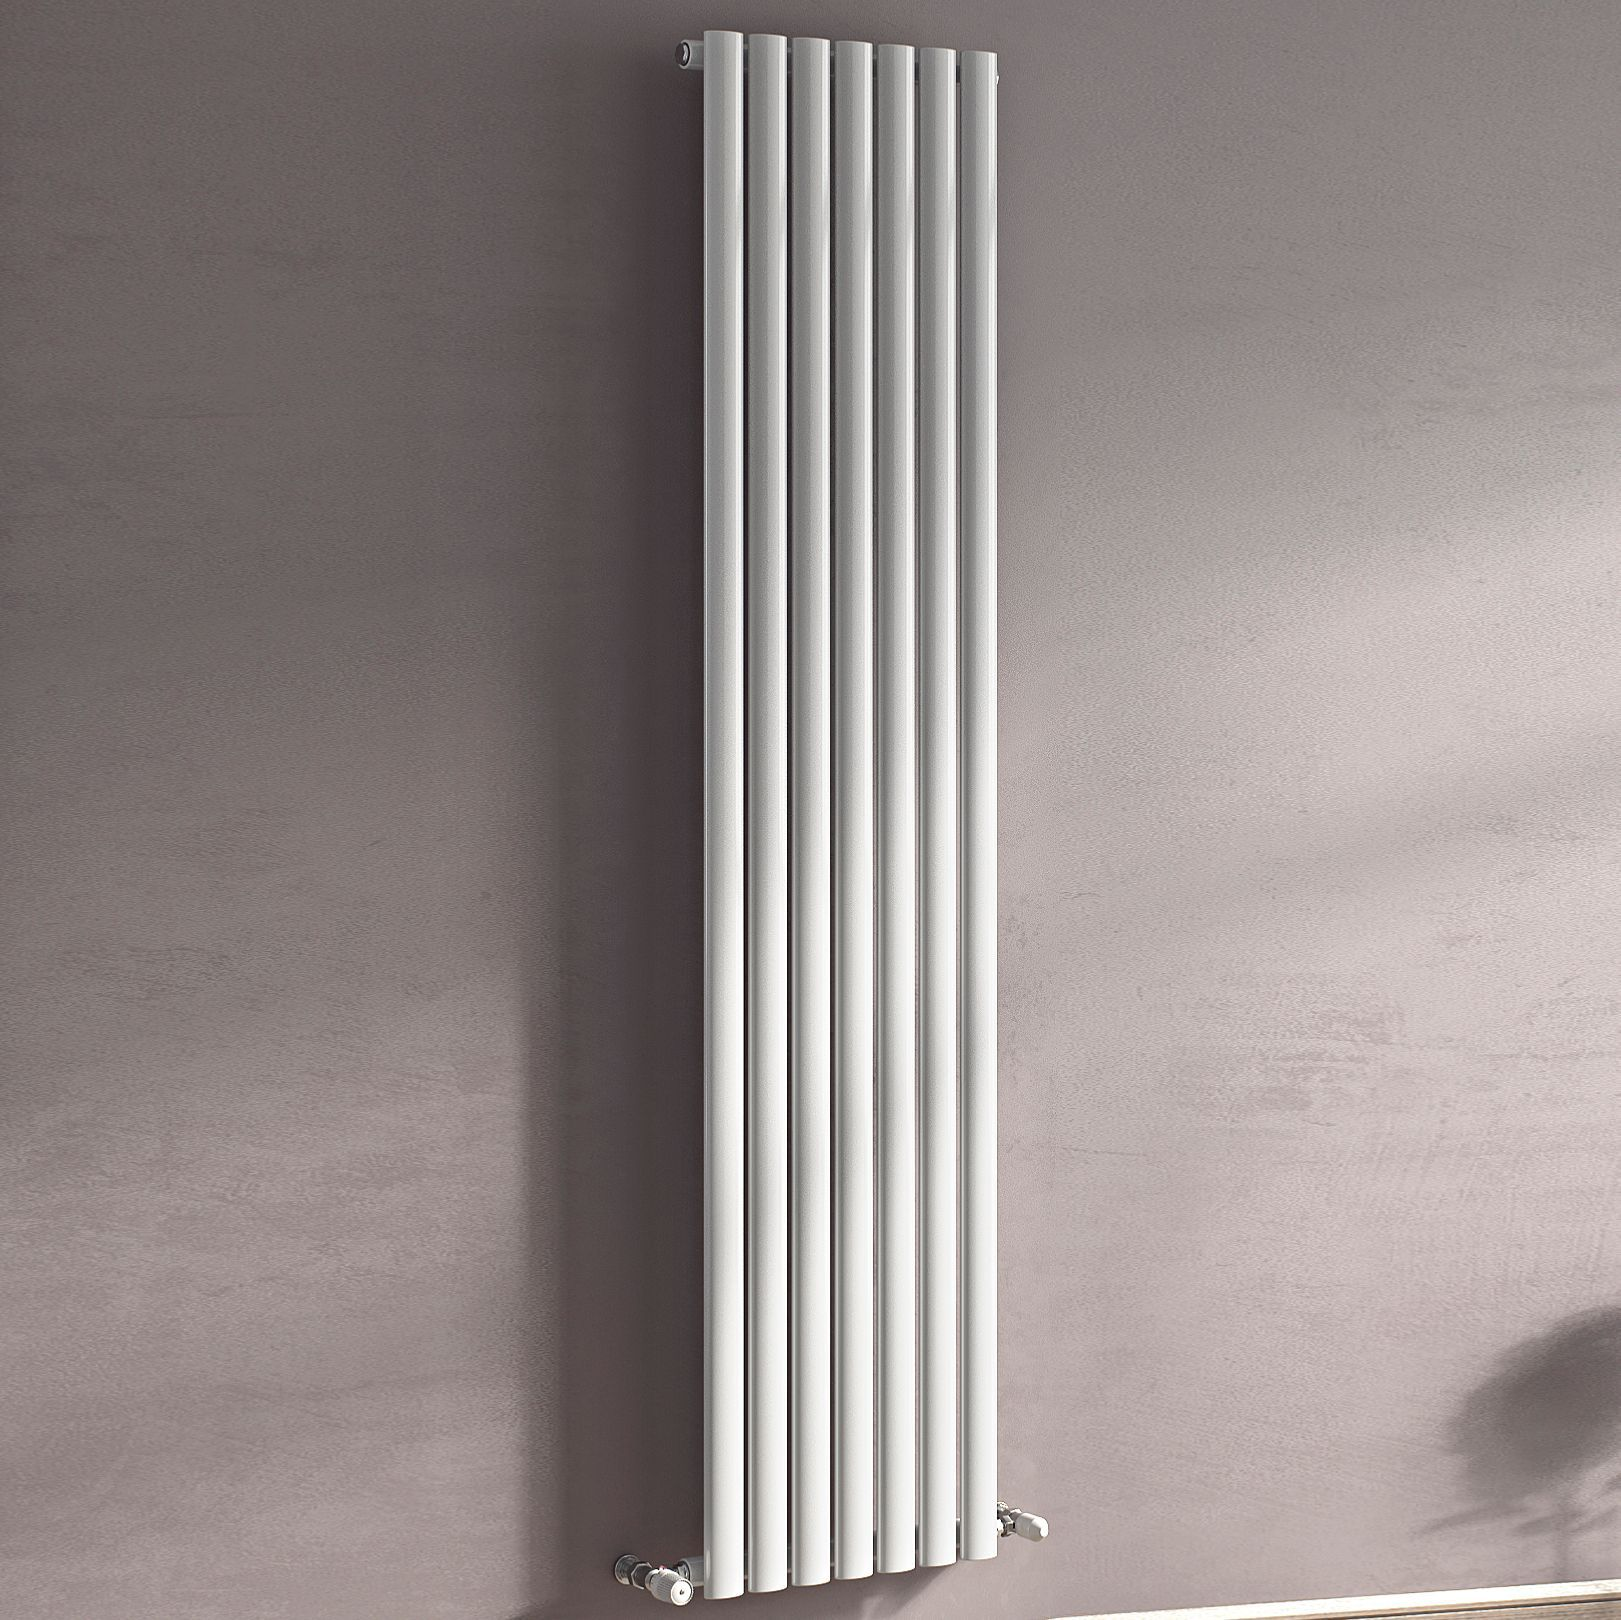 Ximax Champion Vertical Radiator White (H)1800 mm (W)526